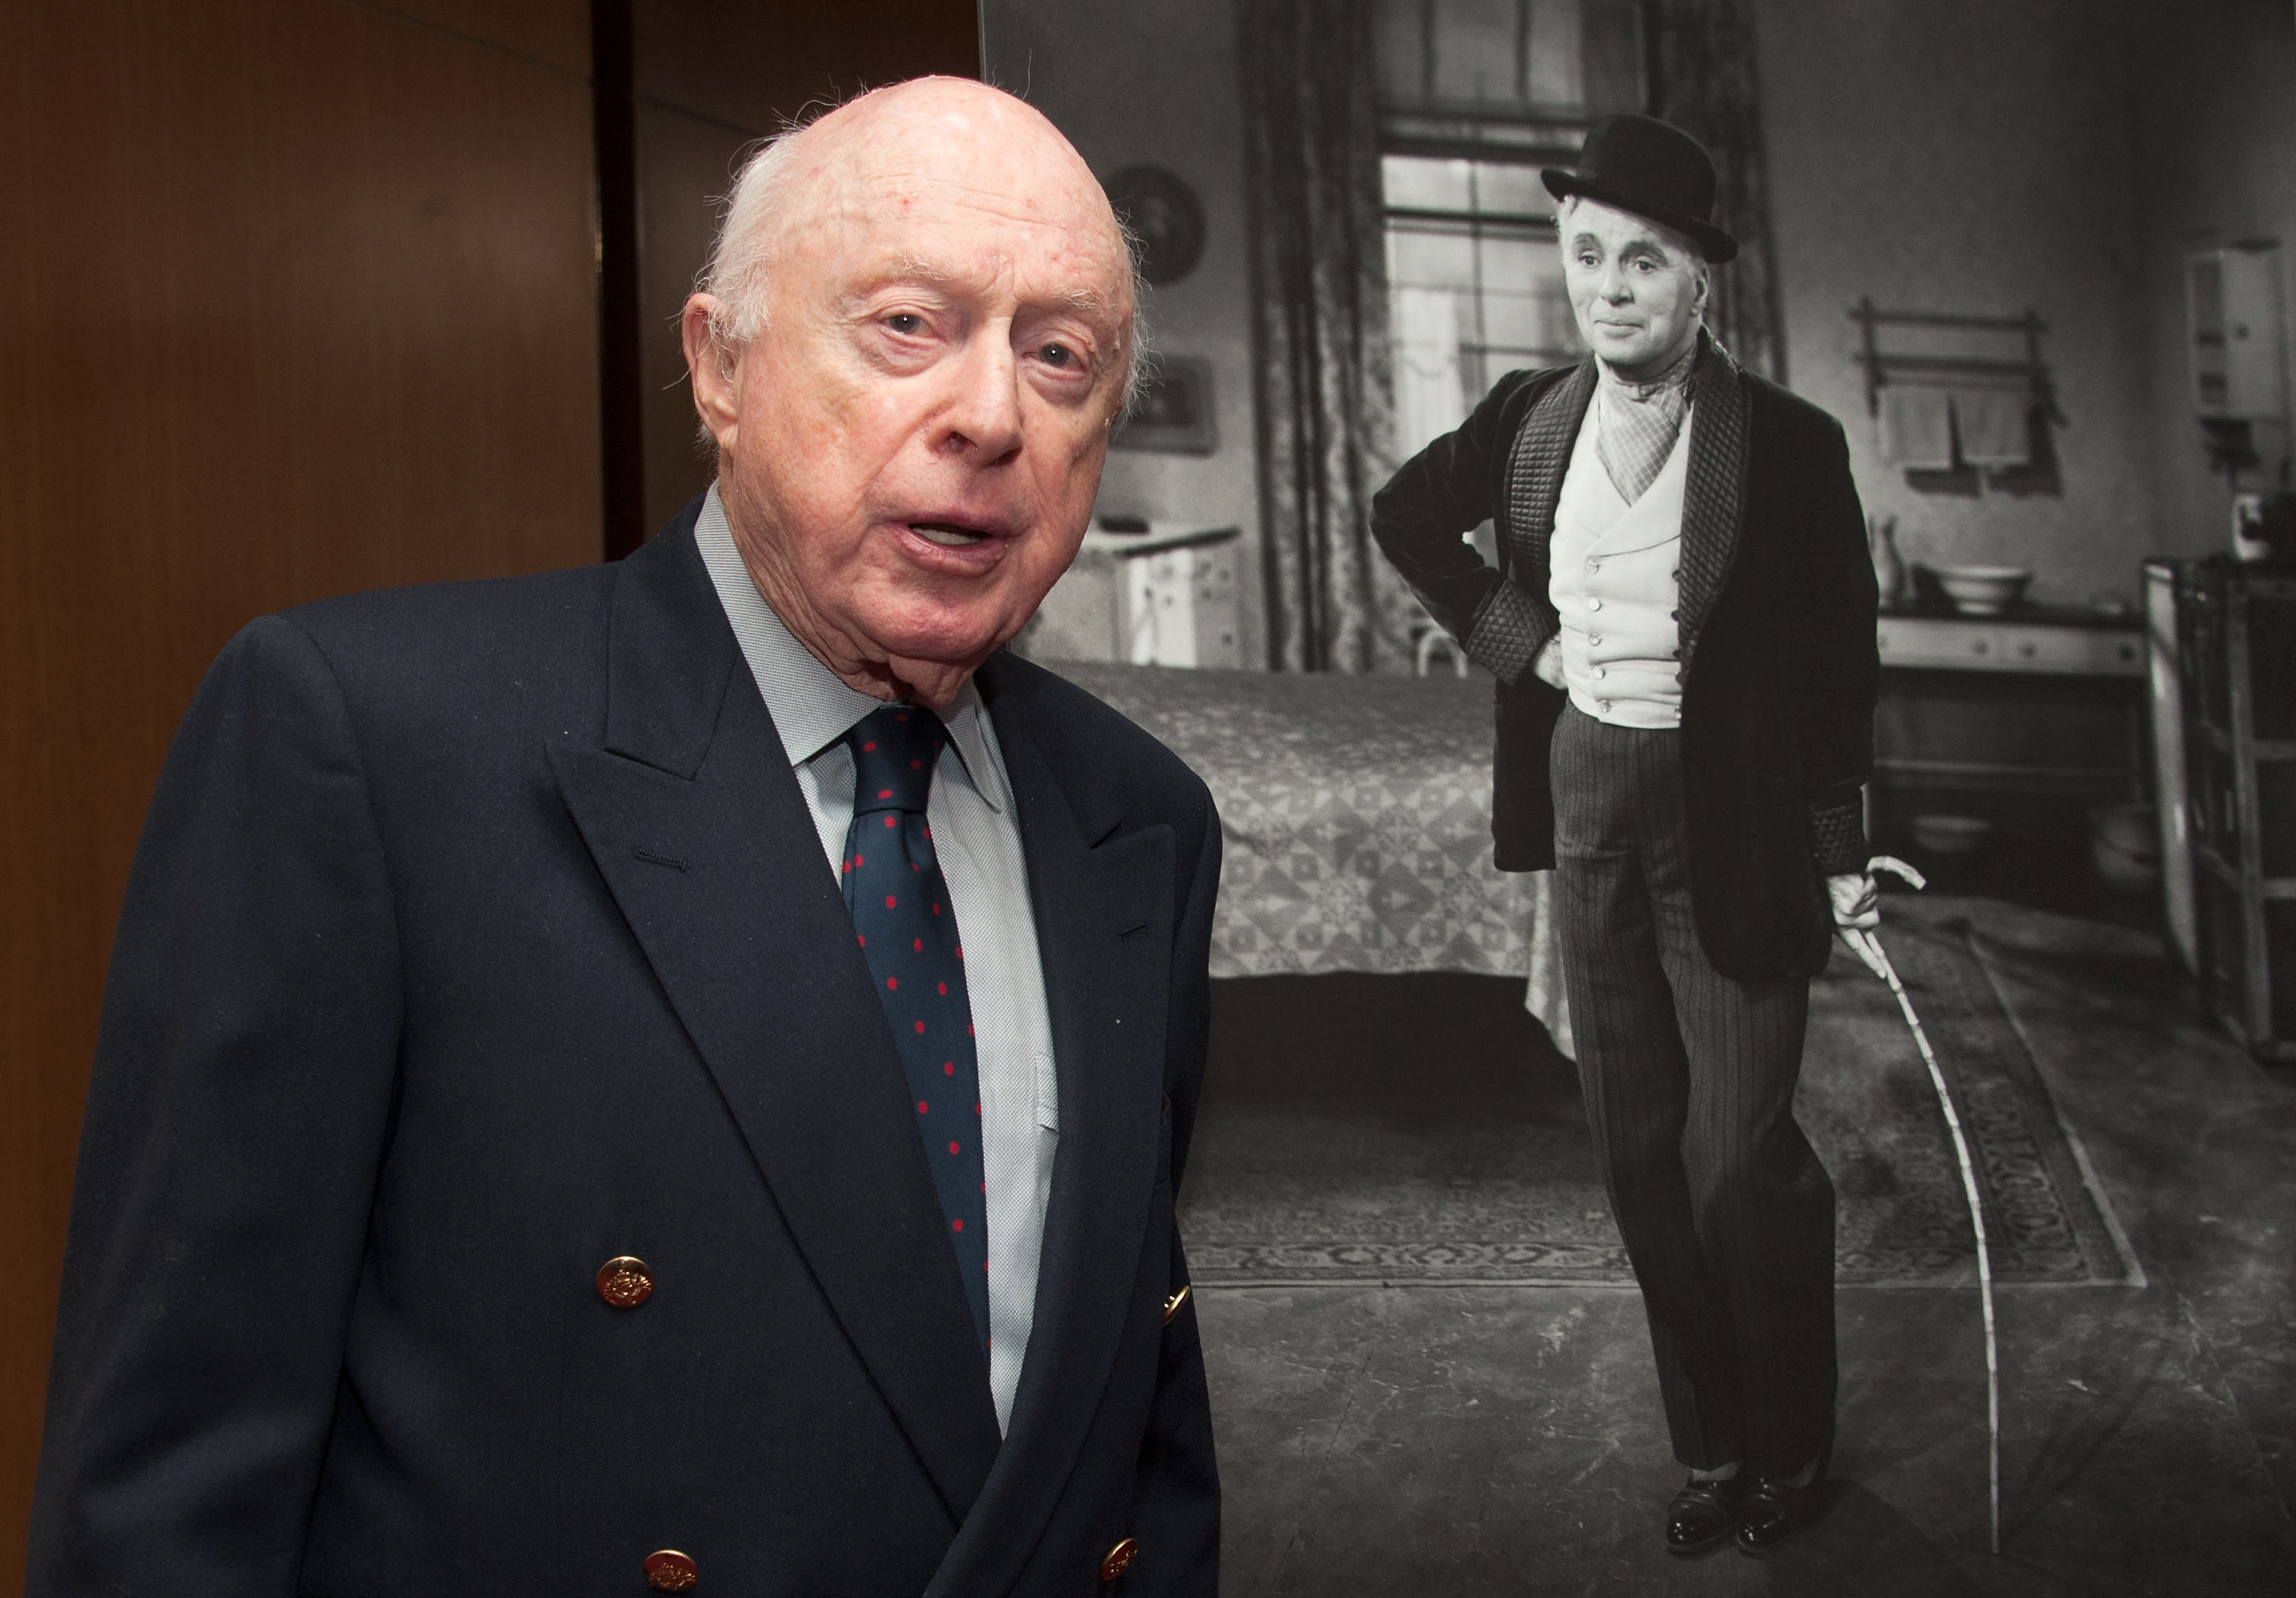 "BEVERLY HILLS, CA - OCTOBER 03: Actor Norman Lloyd attends The Academy Of Motion Picture Arts And Sciences' Presents The 60th Anniversary Screening Of ""Limelight"" at AMPAS Samuel Goldwyn Theater on October 3, 2012 in Beverly Hills, California. (Photo by Valerie Macon/Getty Images)"